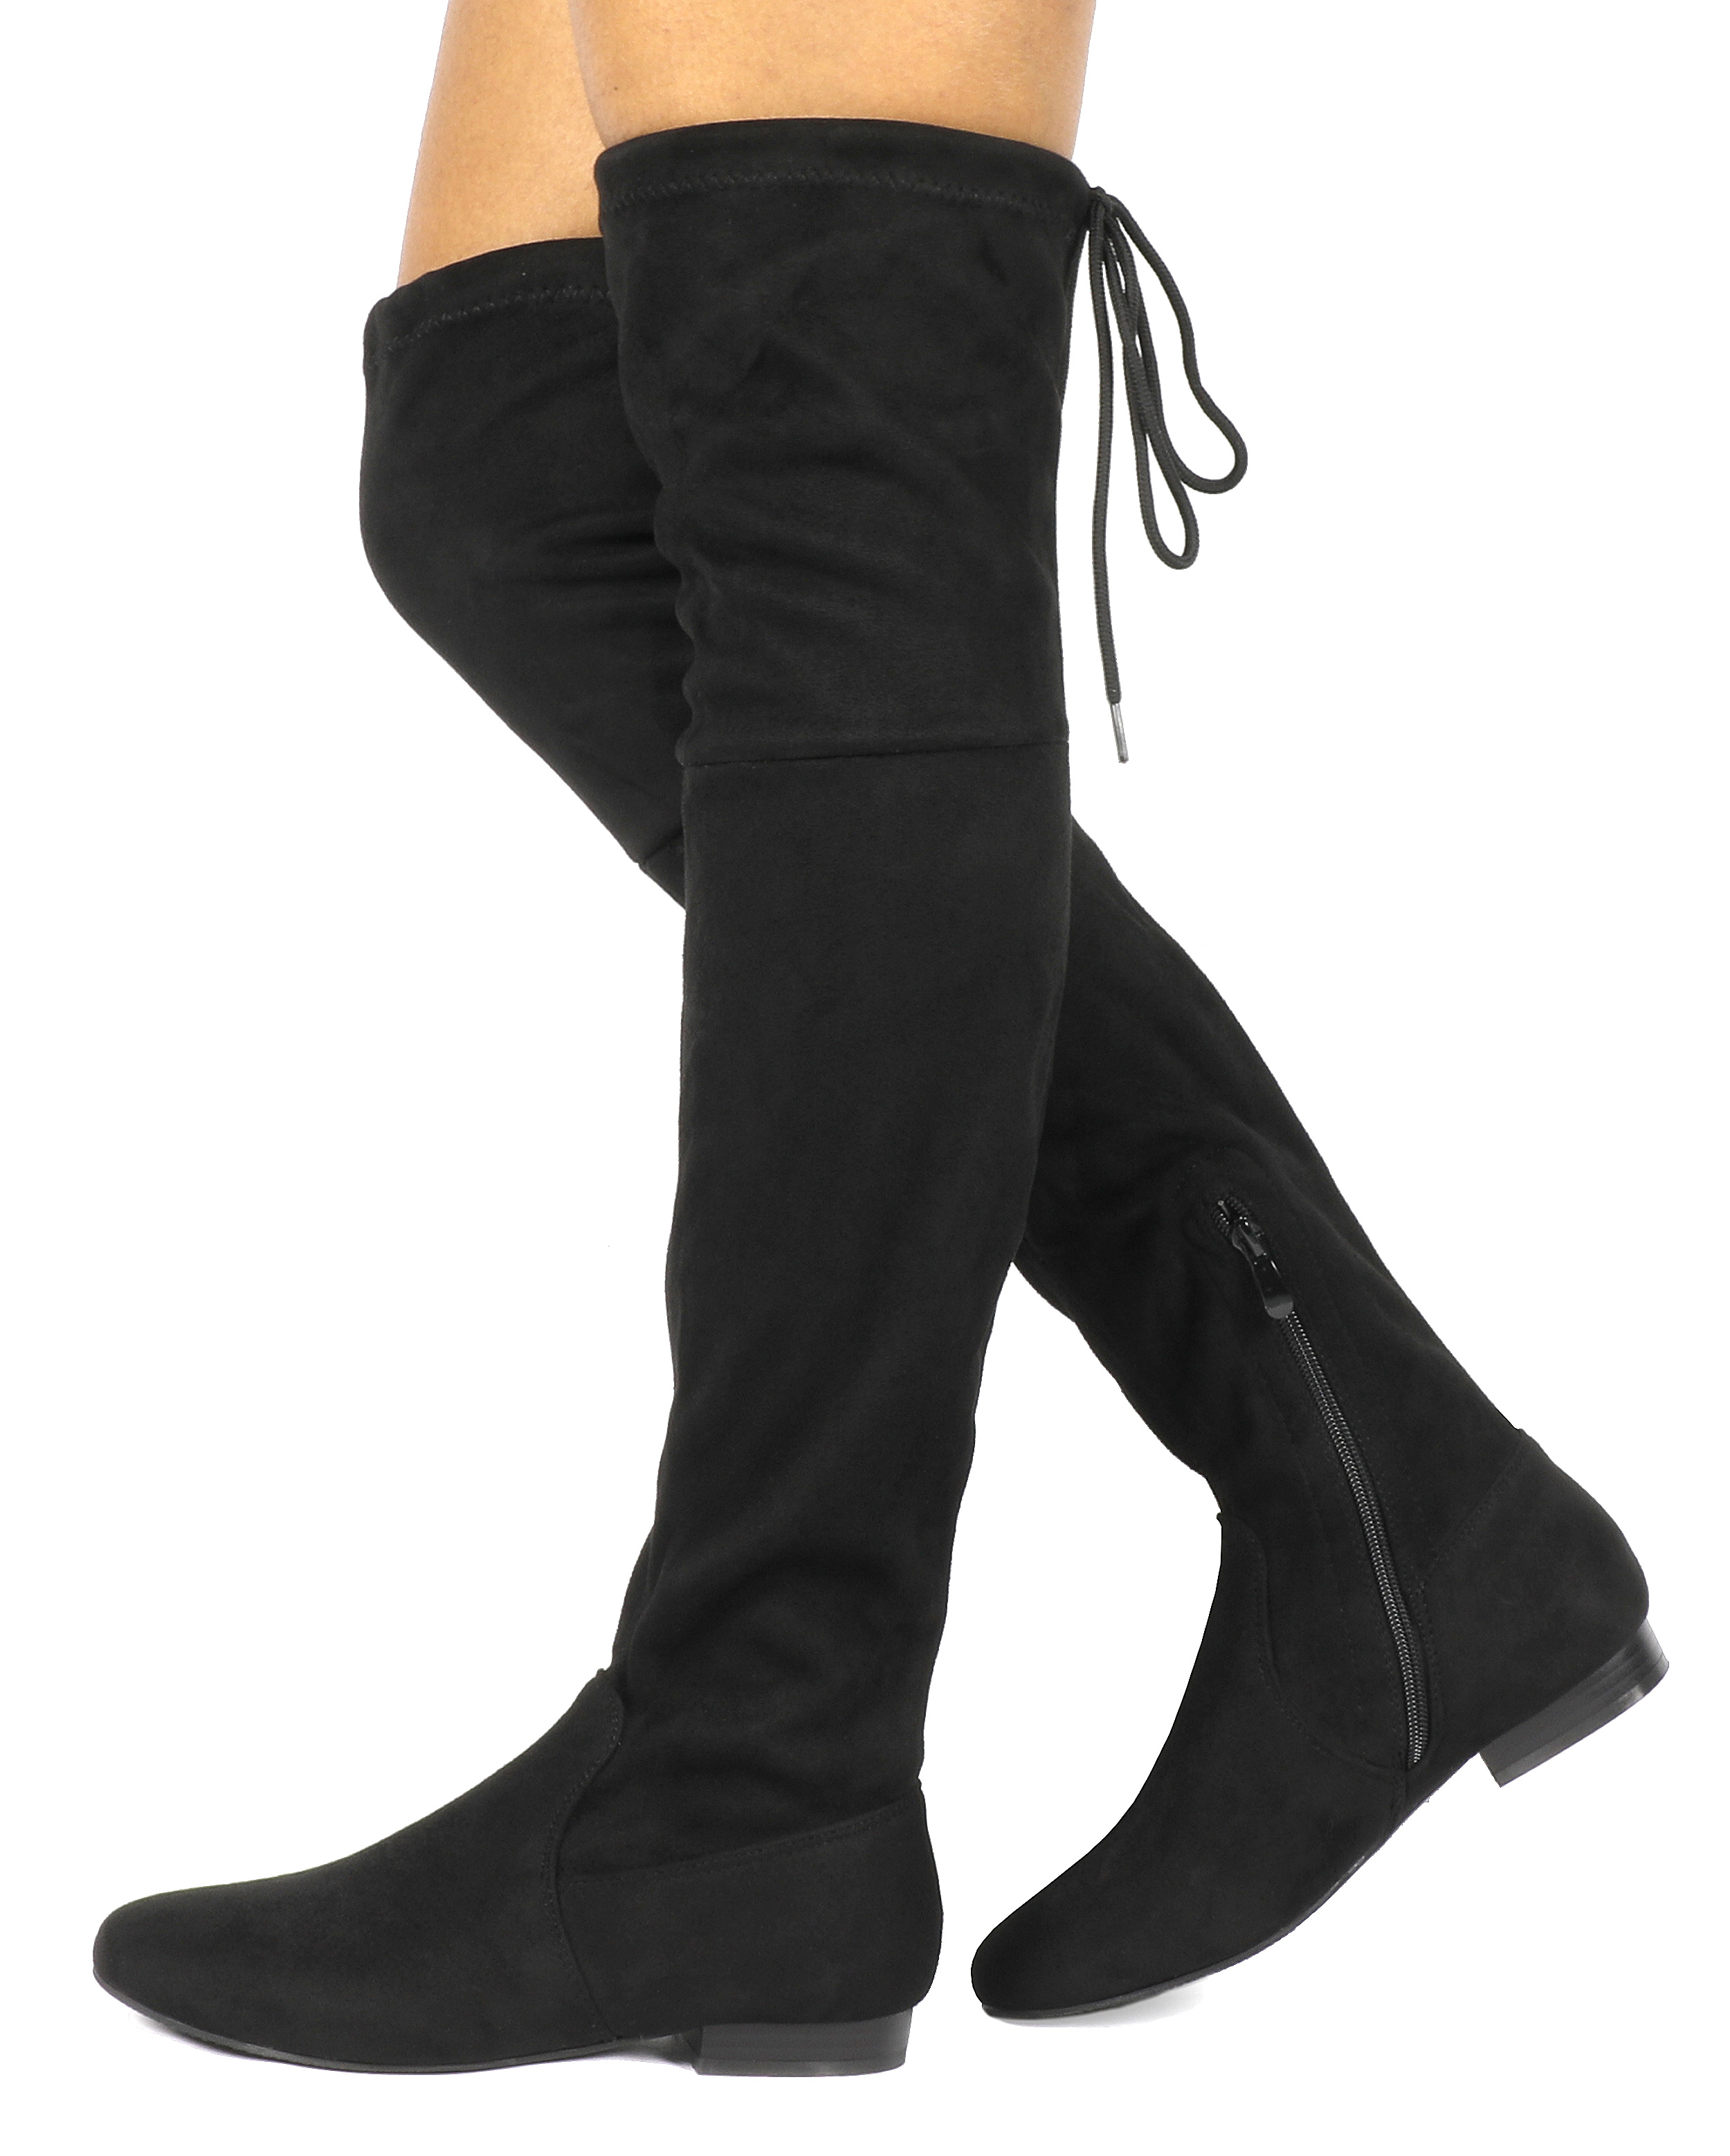 Women-Thigh-High-Flat-Boots-Stretchy-Drawstring-Tie-Fashion-Over-The-Knee-Boots miniatuur 23